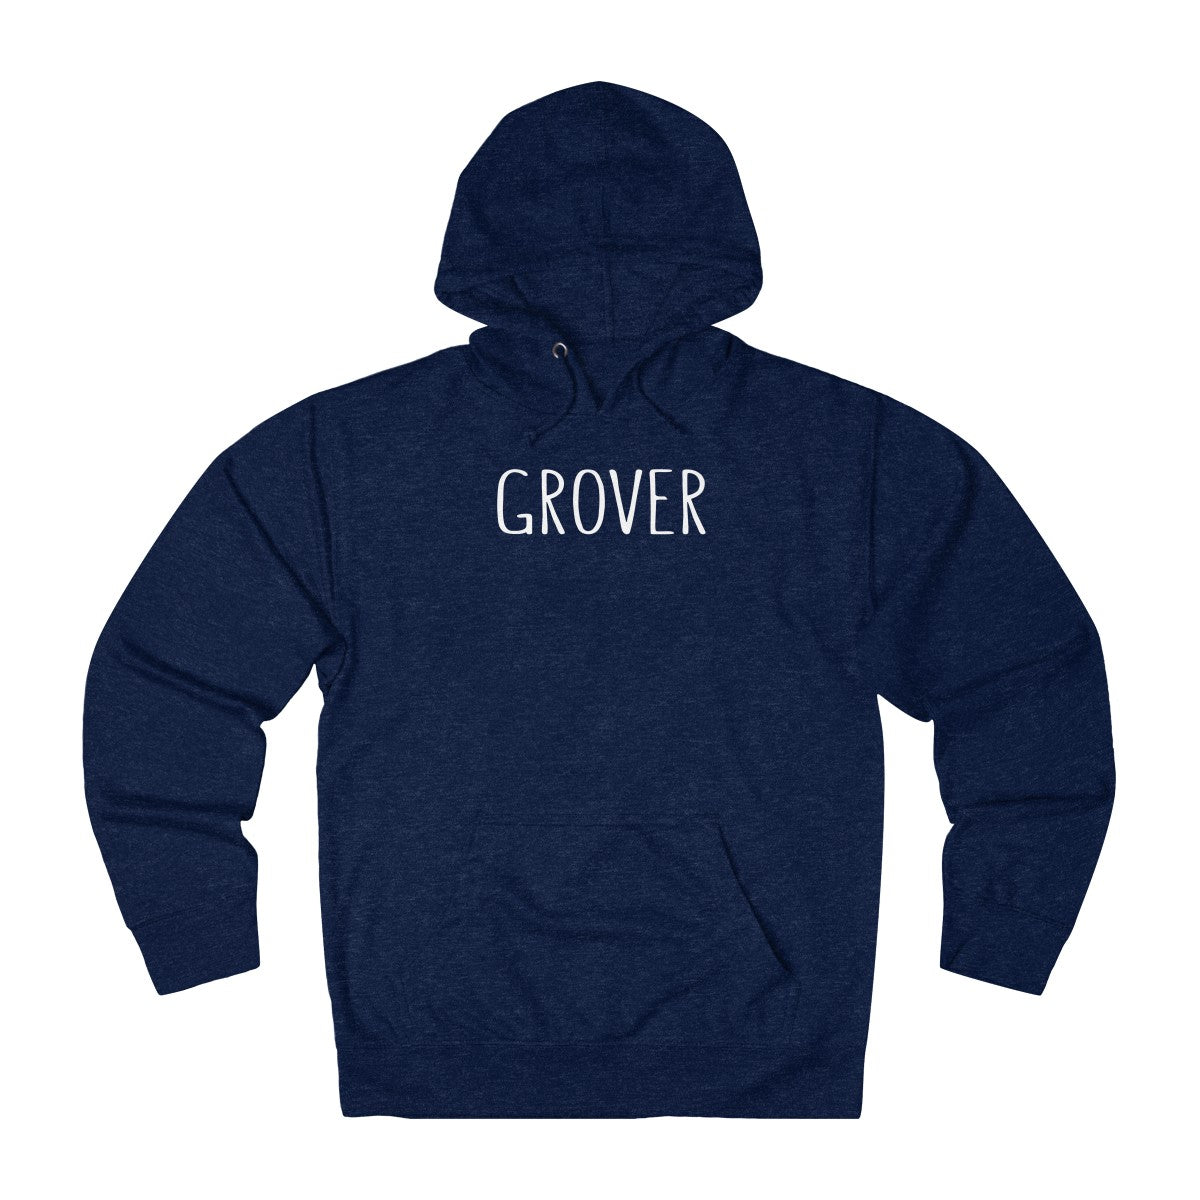 Grover Hoodie Pullover: Multiple Colors